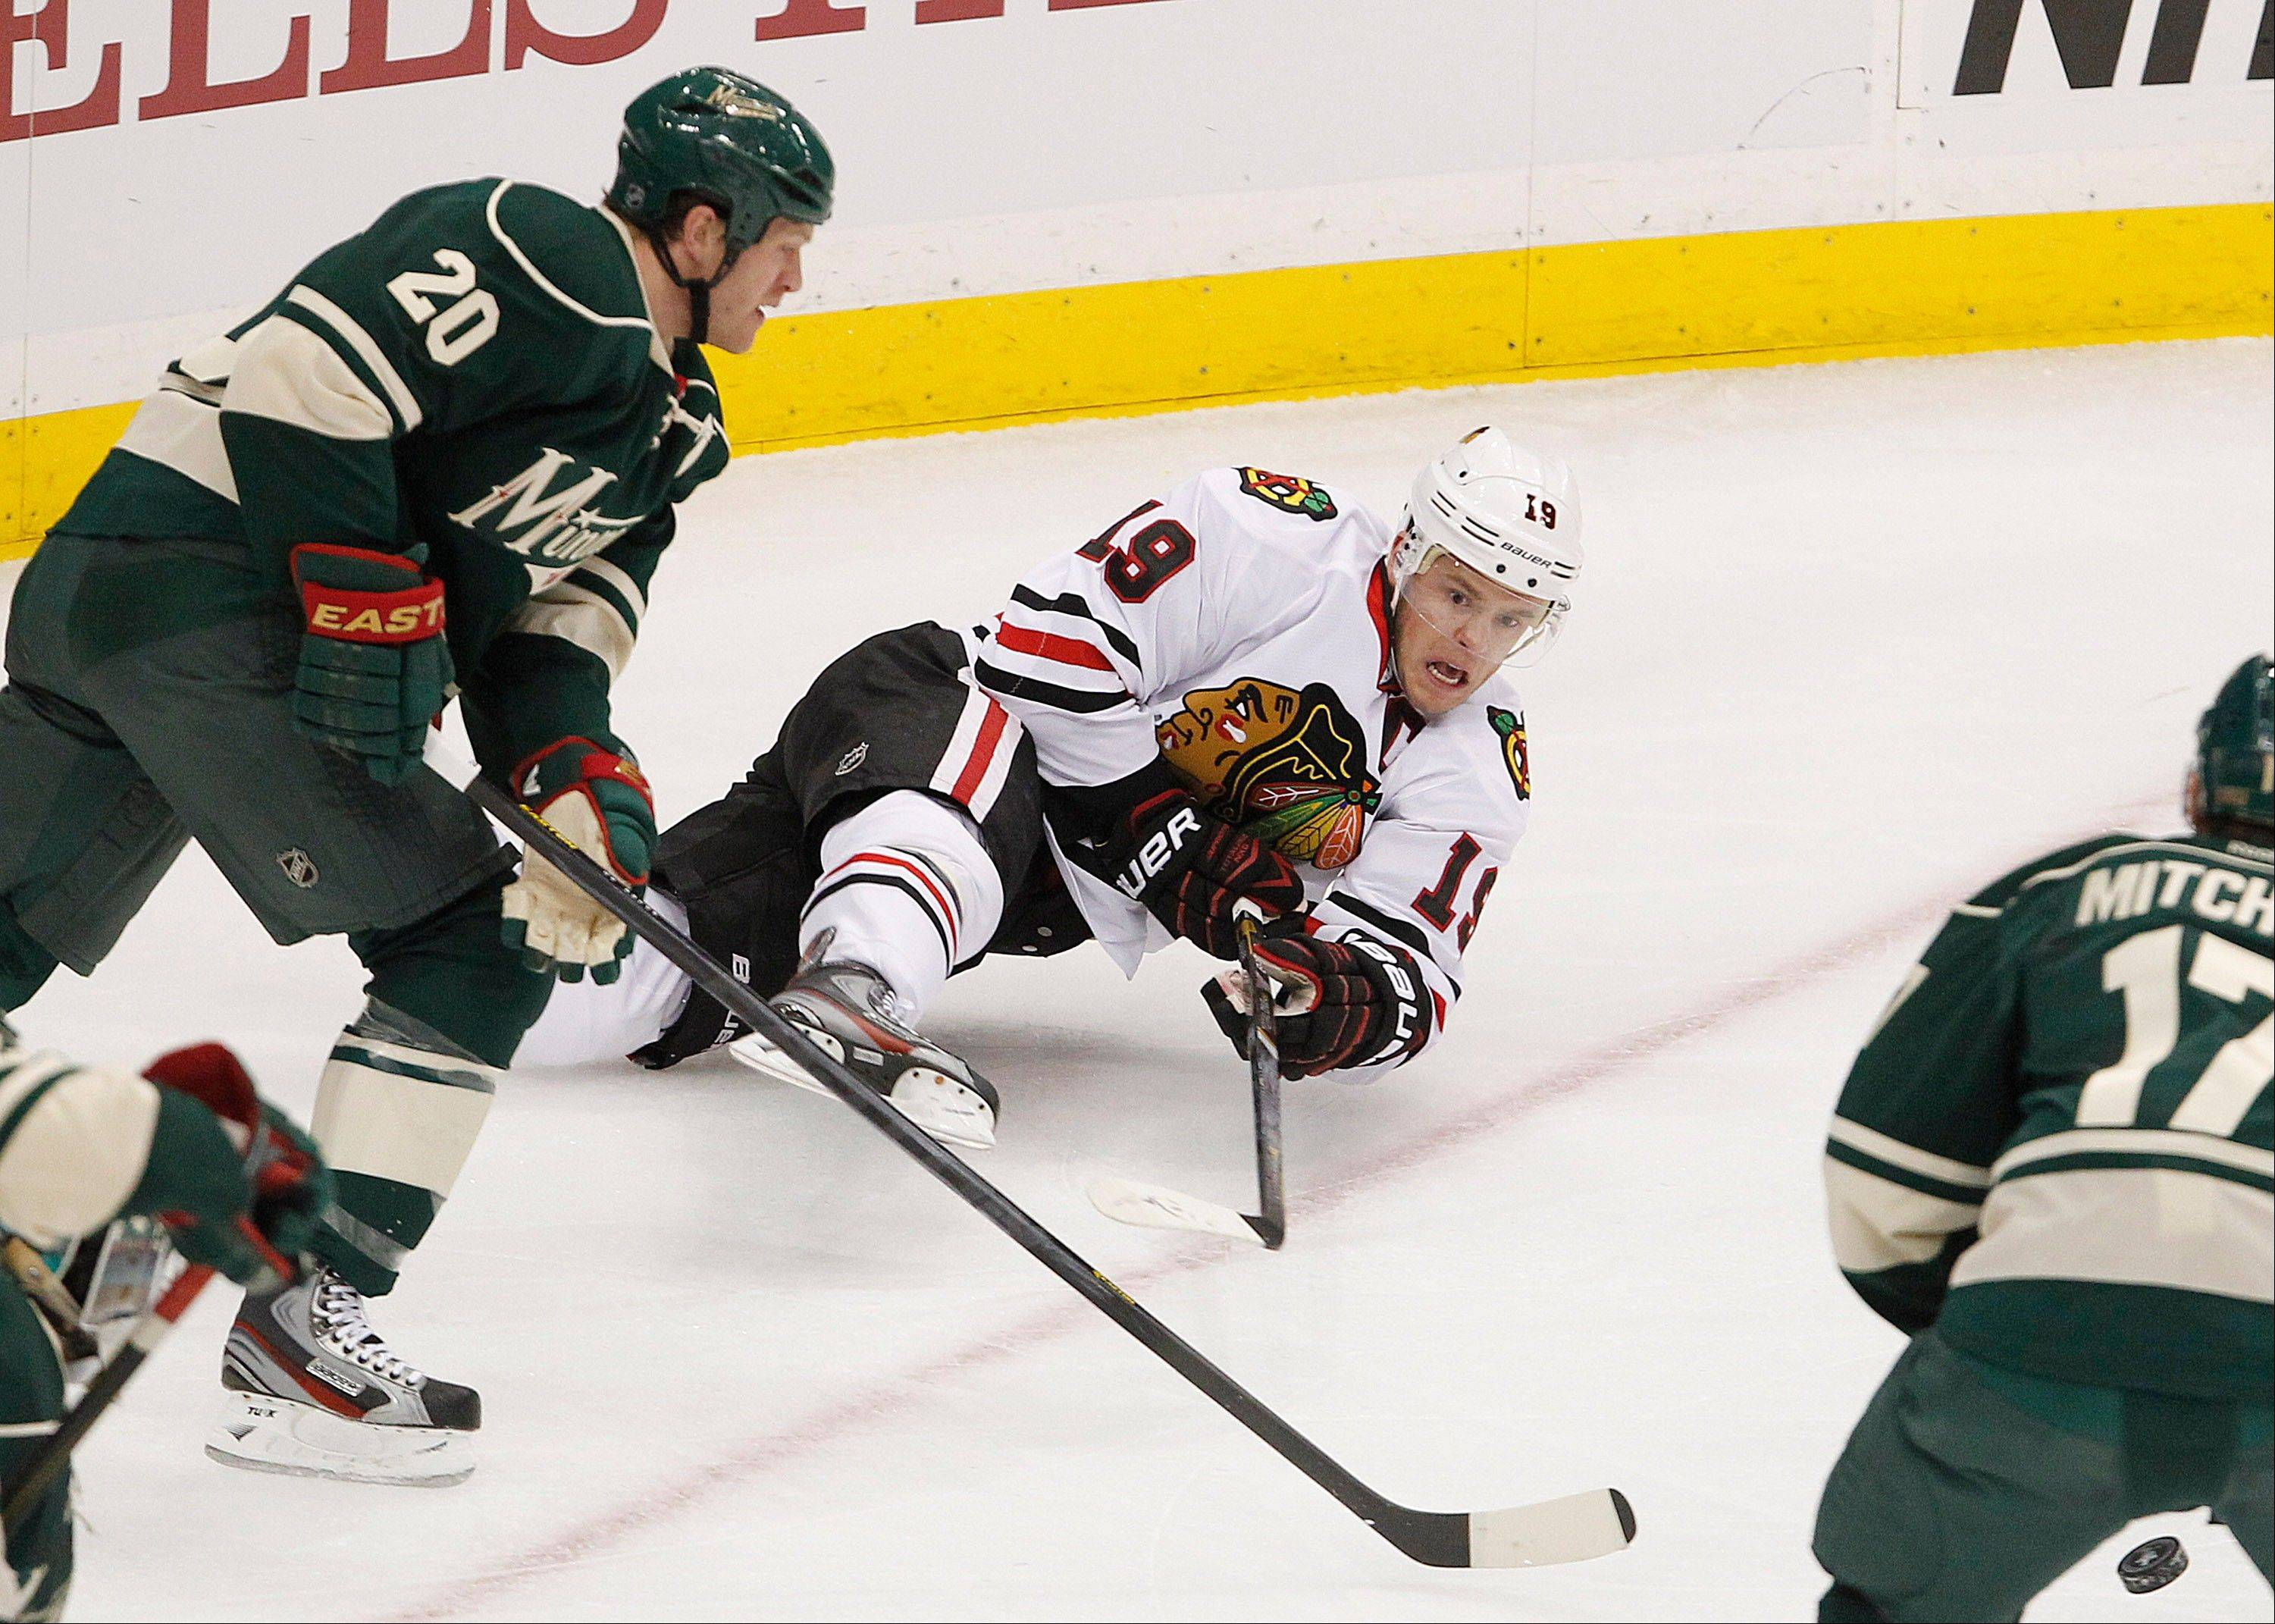 Blackhawks captain Jonathan Toews shoots as he falls in front of Minnesota defenseman Ryan Suter in Sunday's first period of Game 3 in the teams' first-round playoff series.